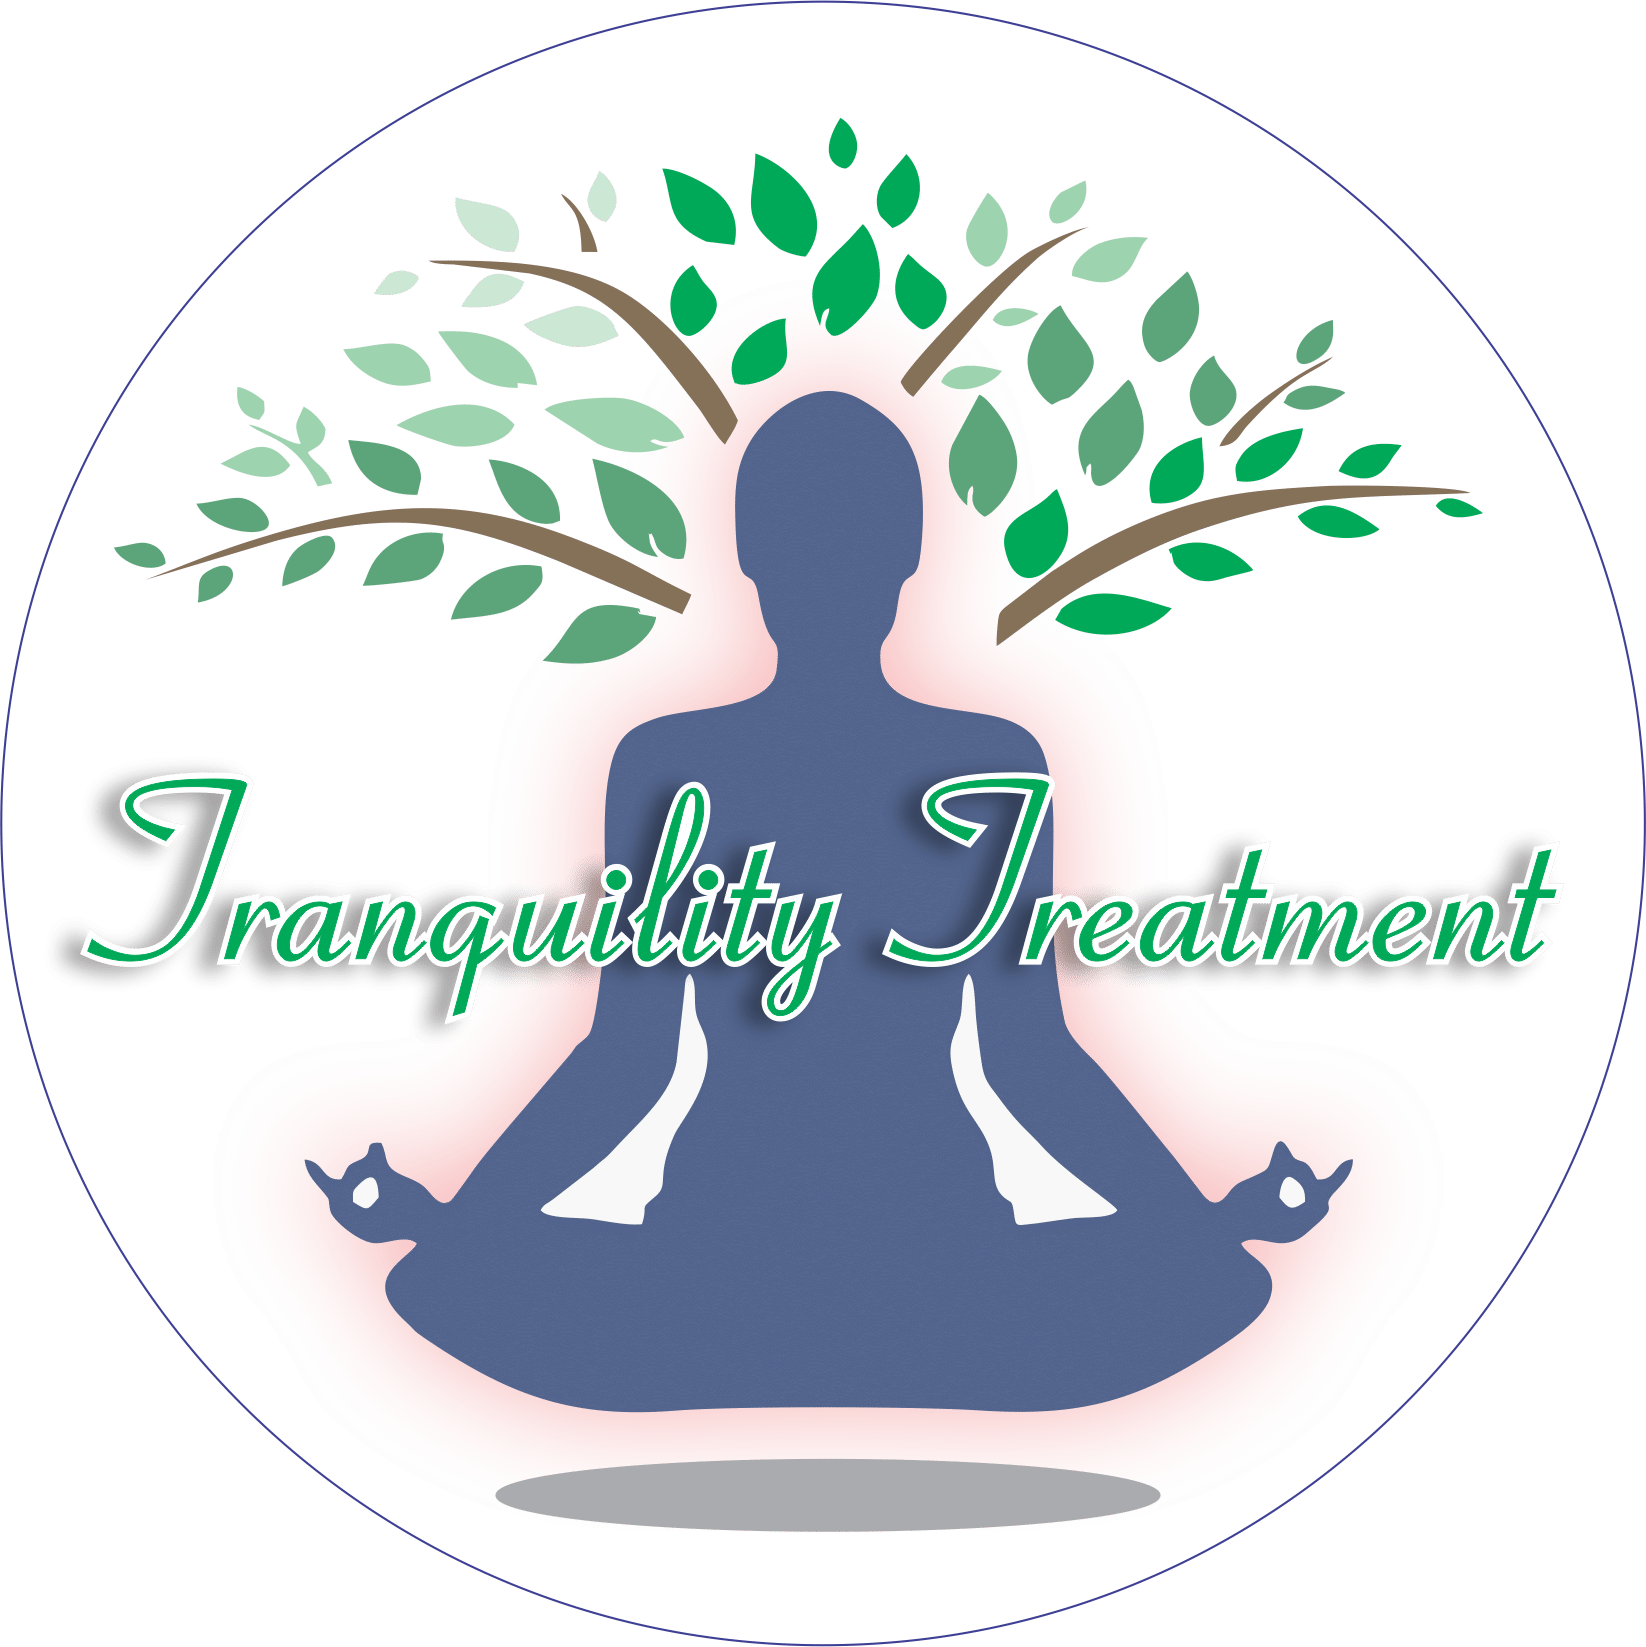 Tranquility Treatment